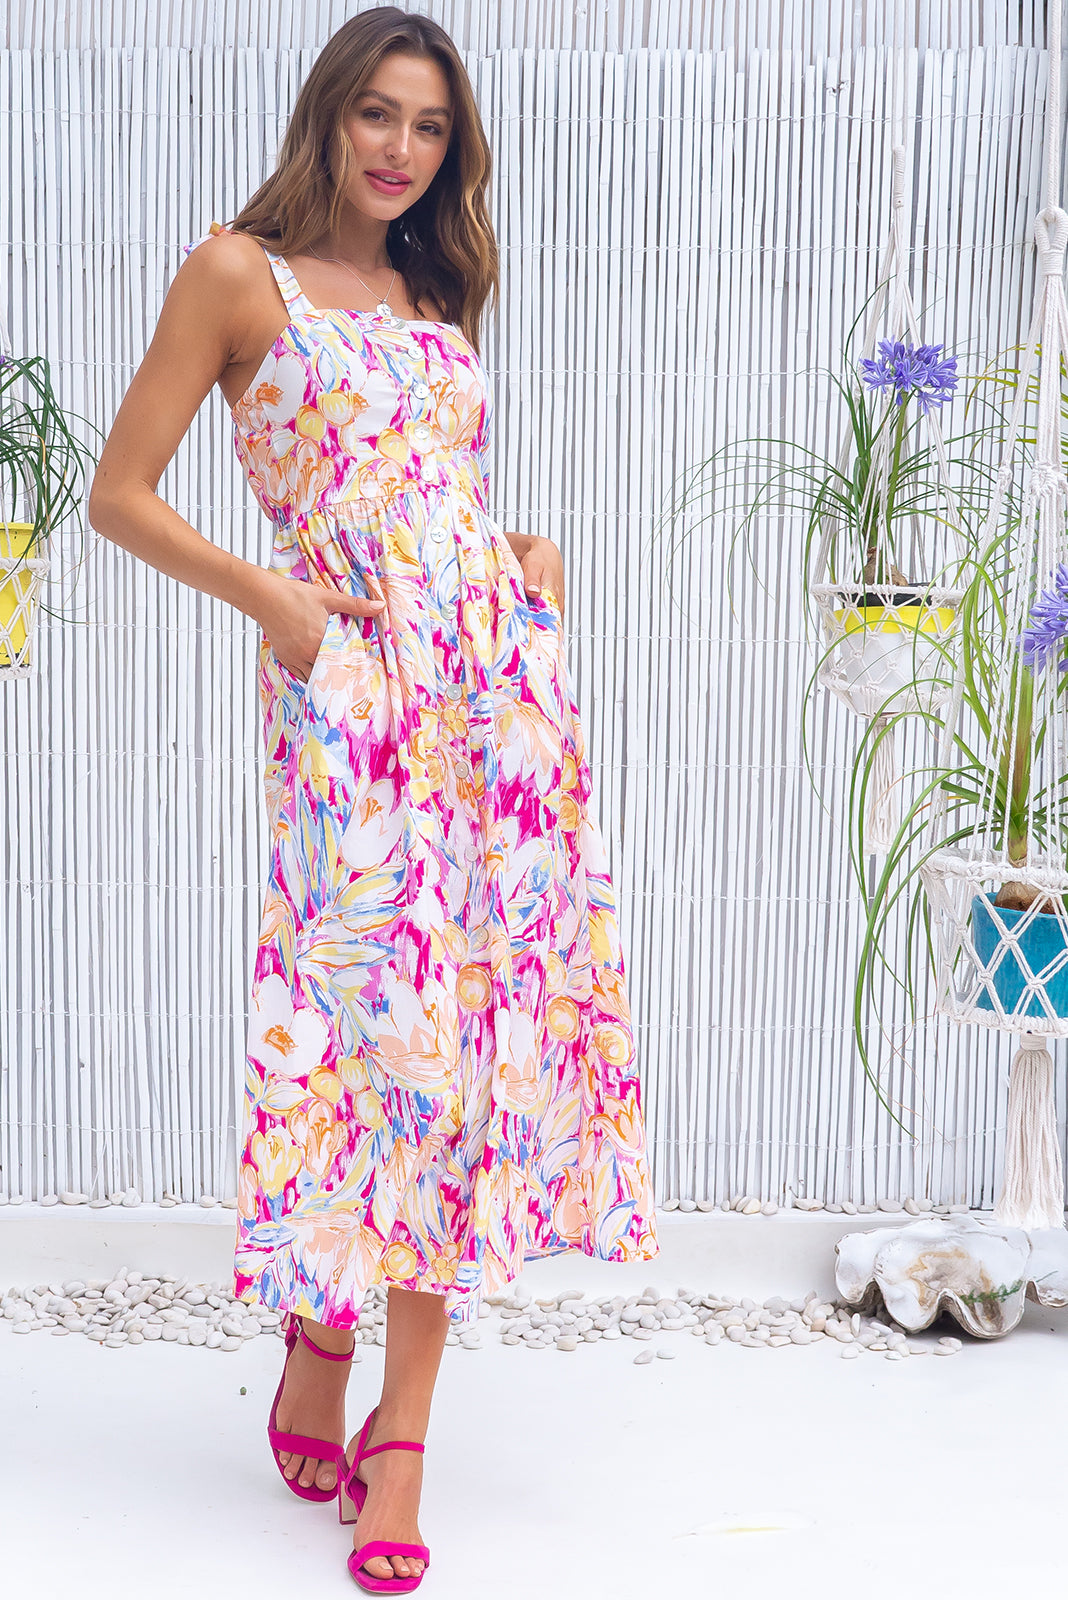 The Midsummer Monet Pink Dress features straight neckline, tie up shoulder straps, functional shell button front, side pockets, elasticated waist back and woven 100% cotton poplin in pink, orange, yellow, white and lilac abstract floral print.